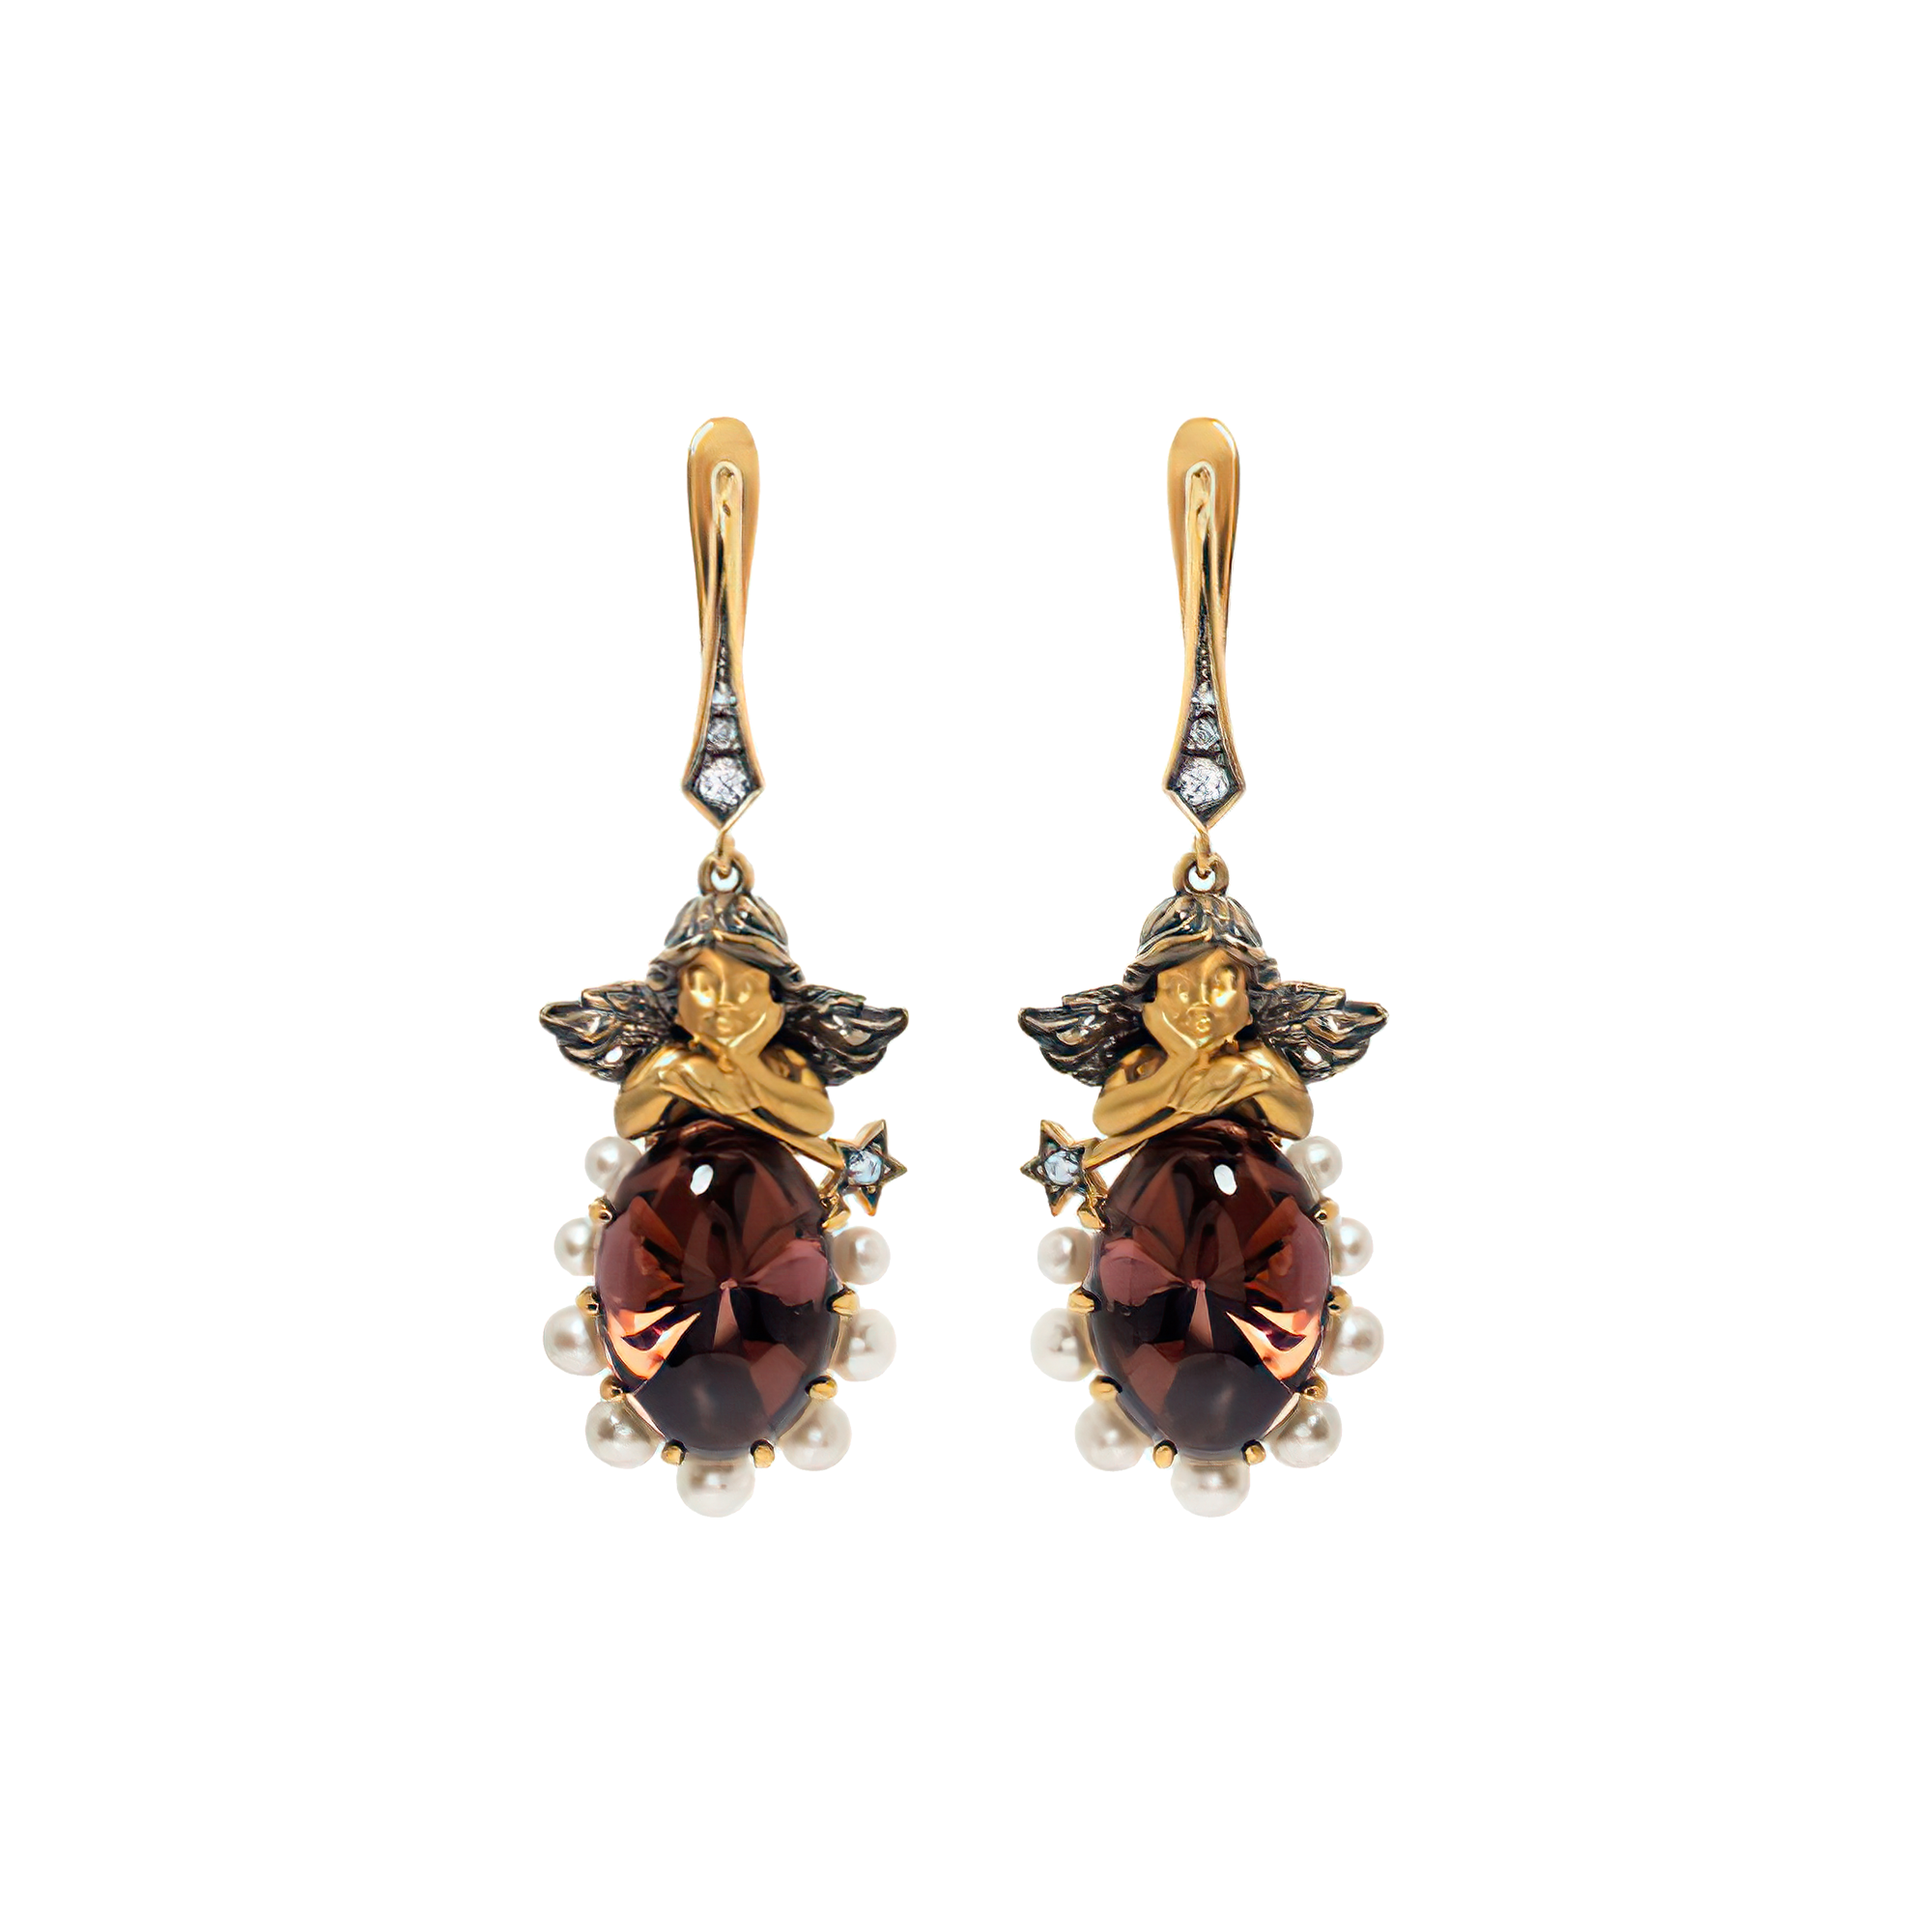 Cupids Earrings